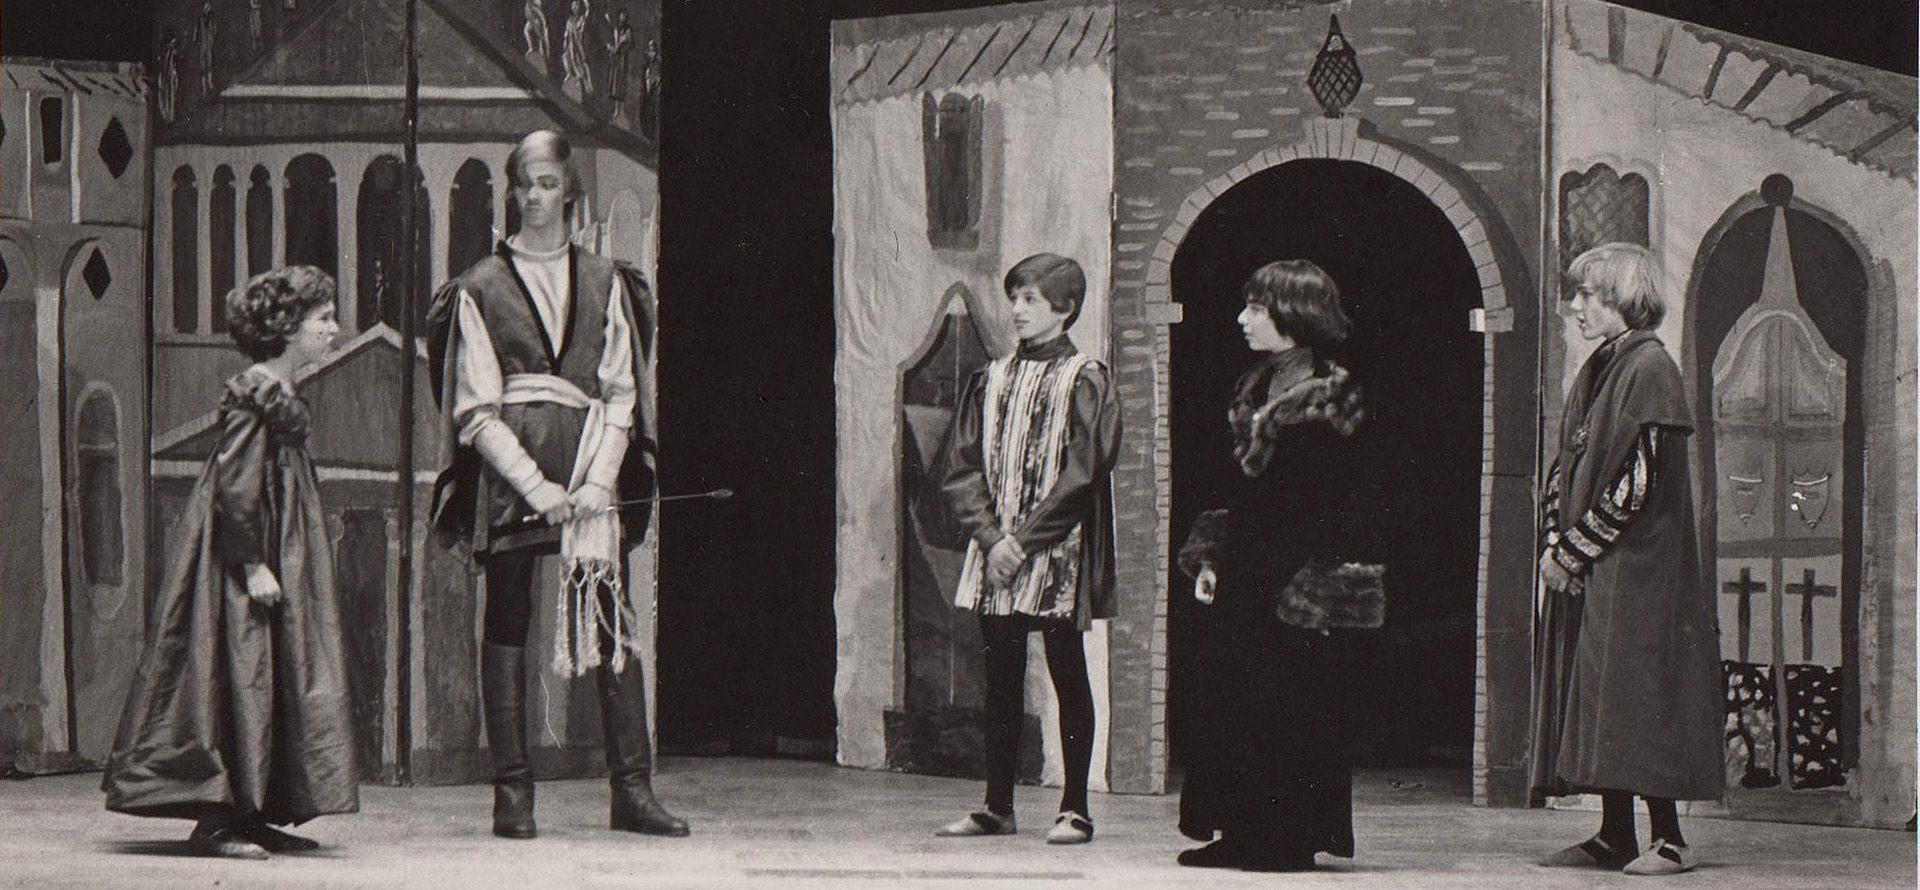 1975, The Taming of the Shrew